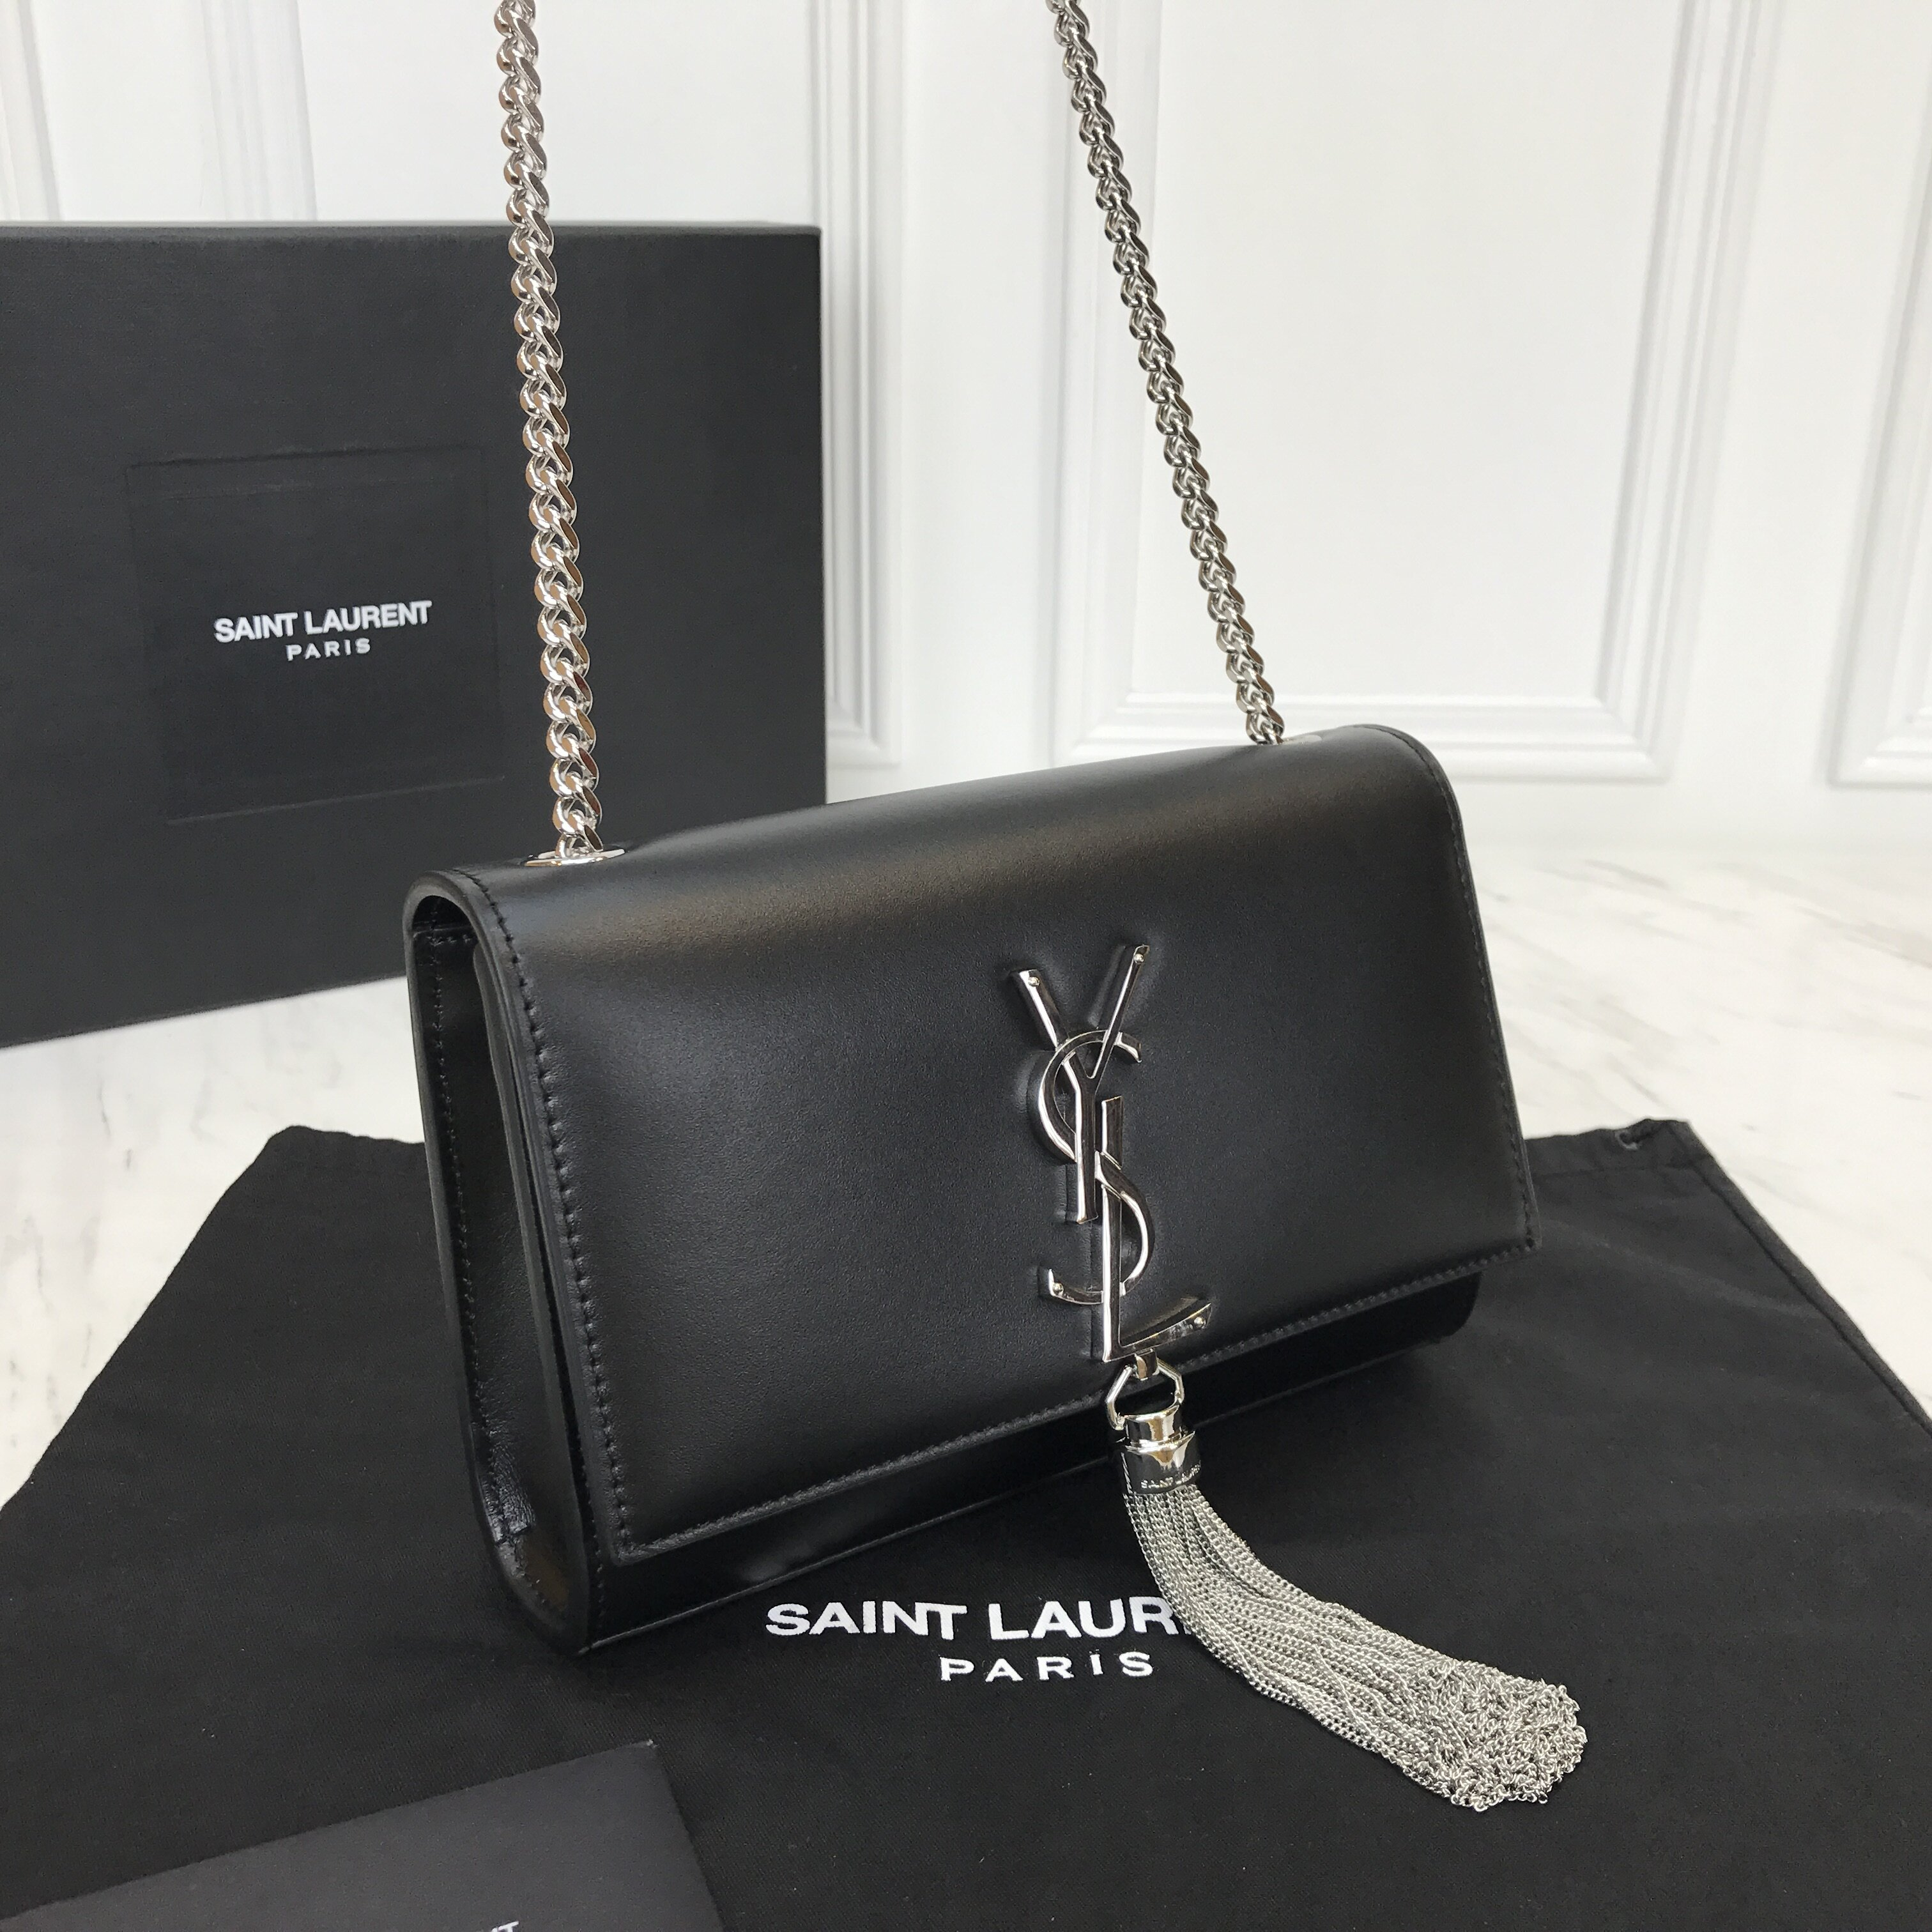 Replica Bags Syl Kate Small Bag Y Yves Saint Laurent St